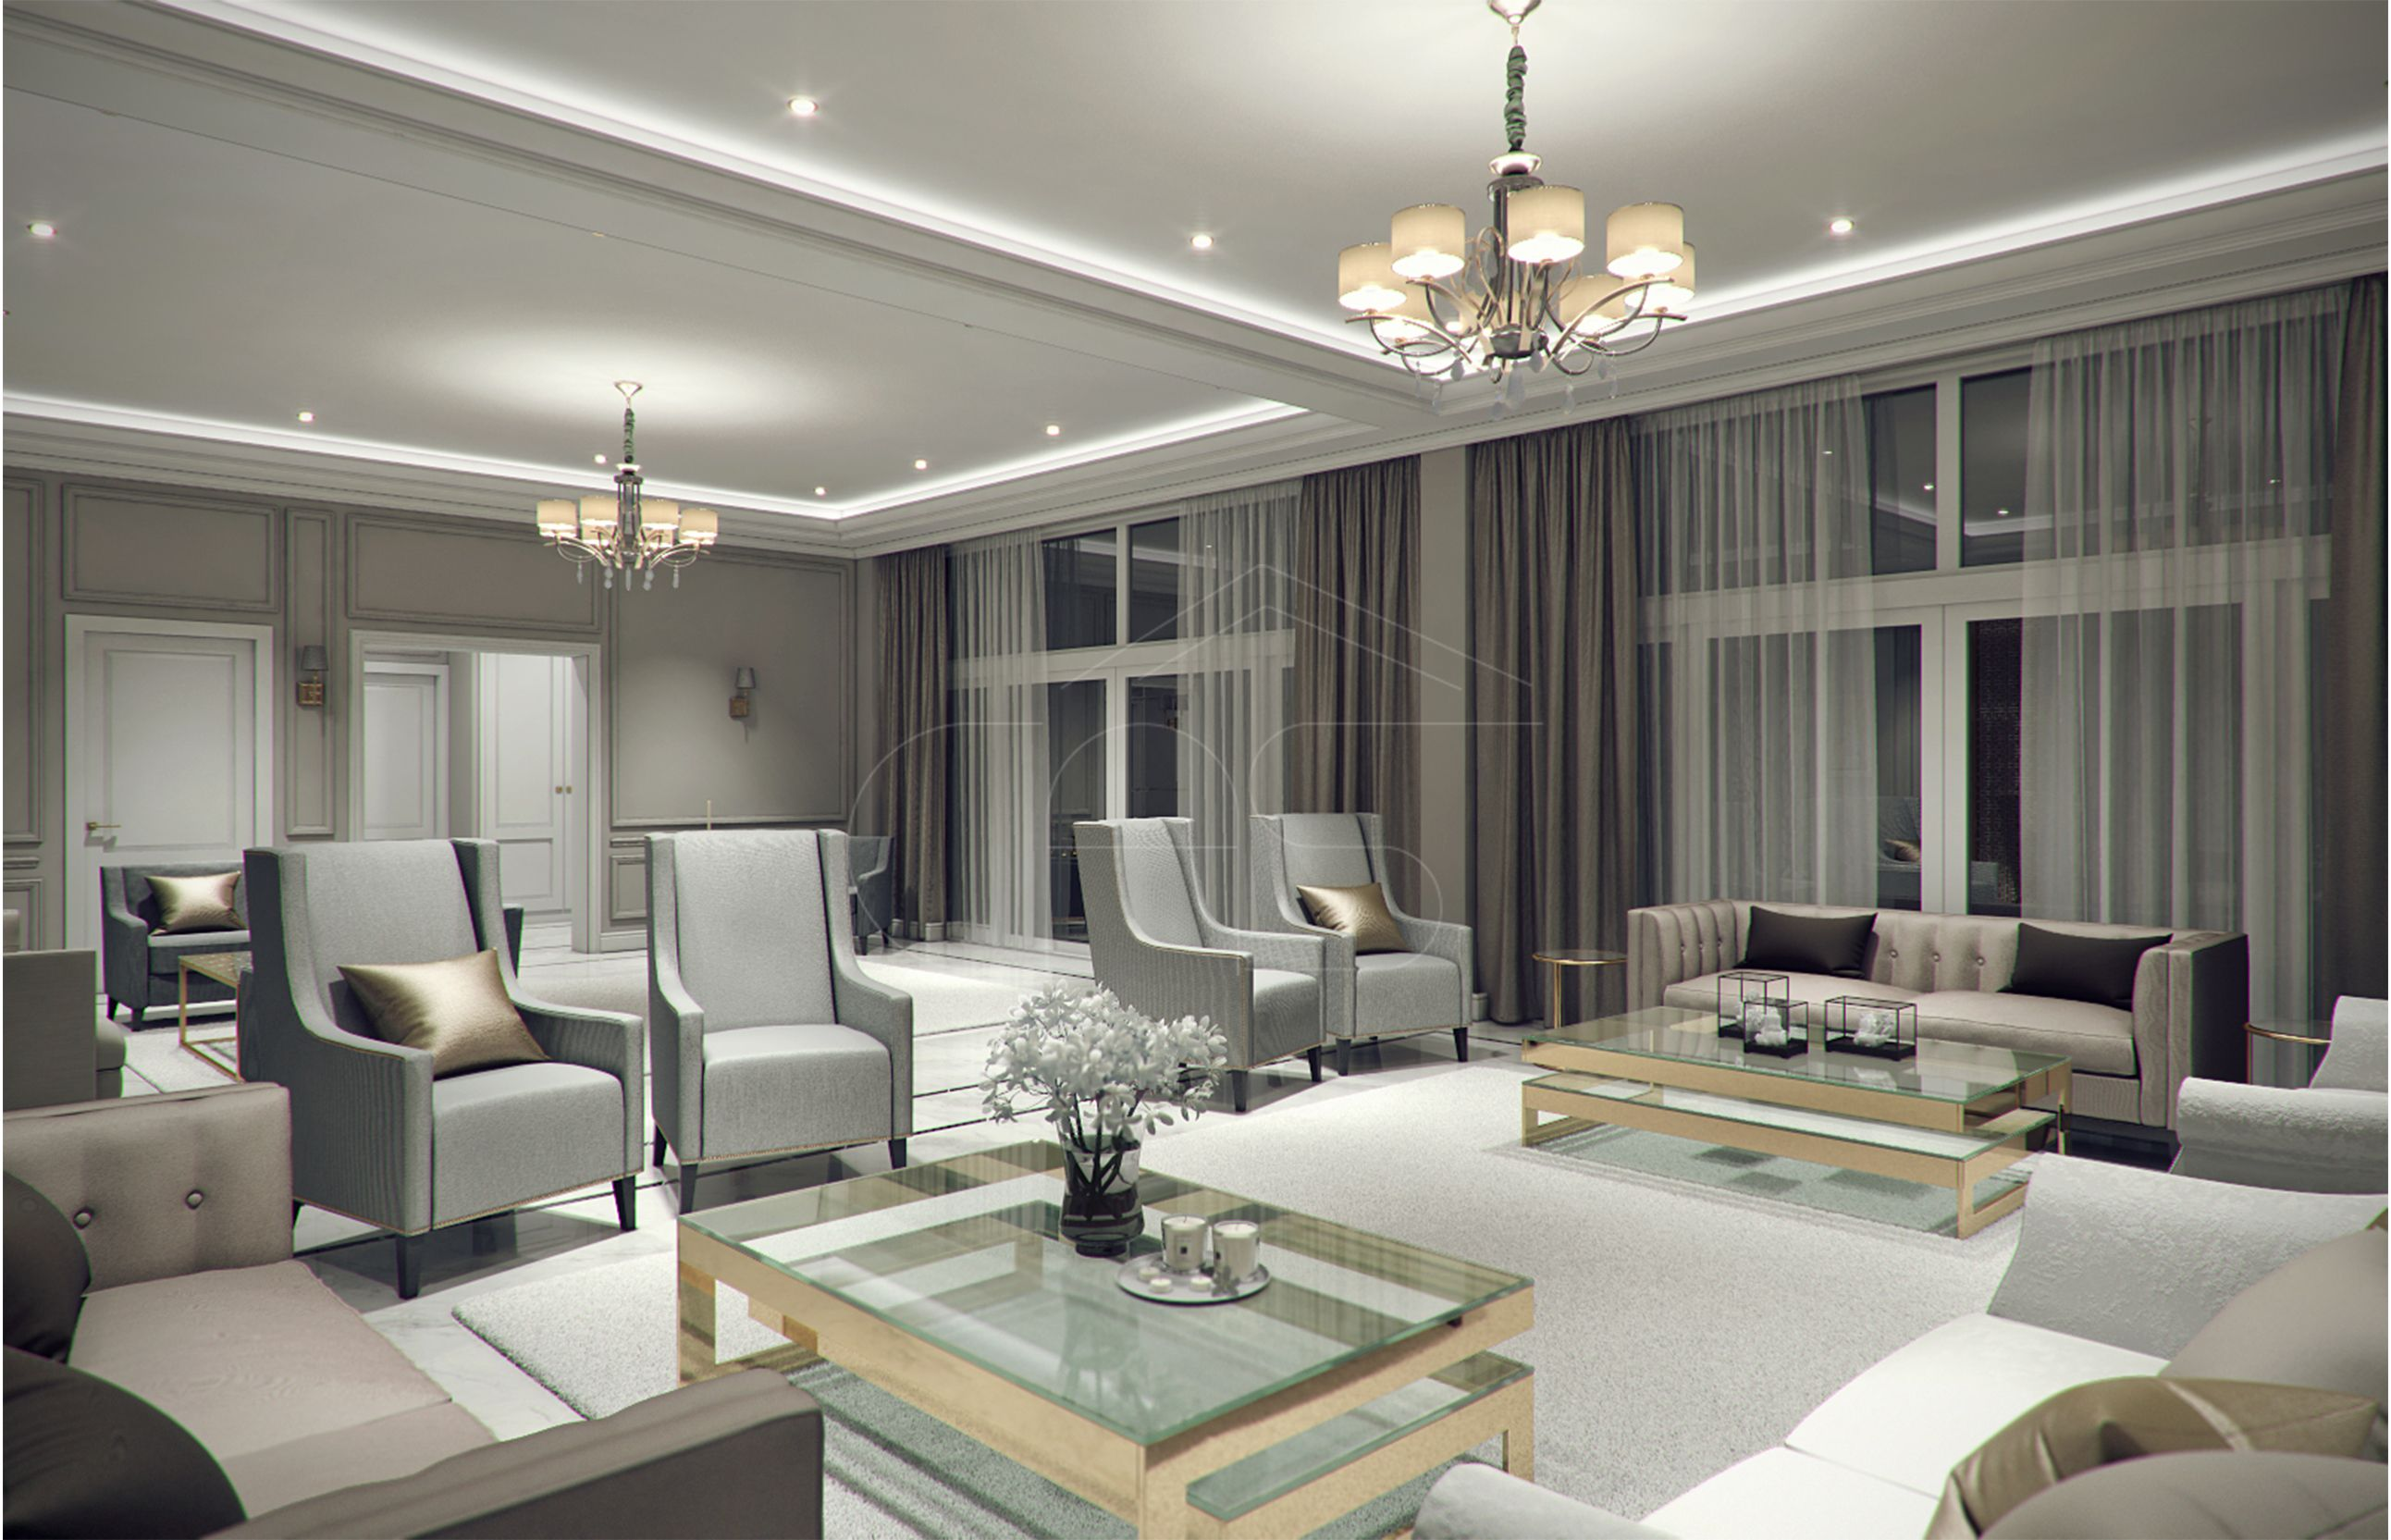 Modern Classic Villa Interior Design Riyadh Saudi Arabia With